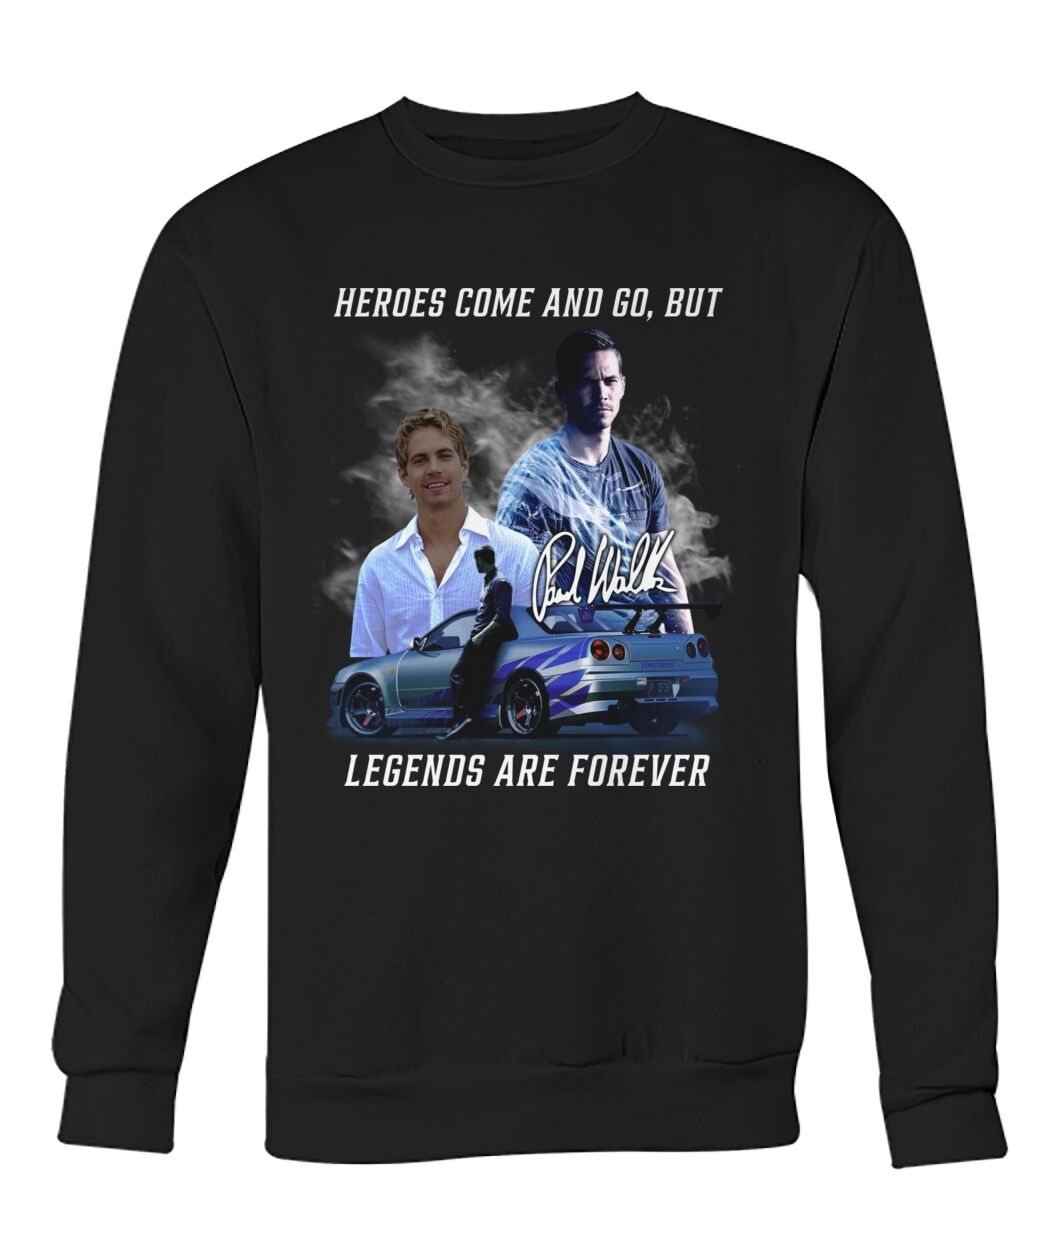 Paul Walker Heroes come and go but legens are forever shirt